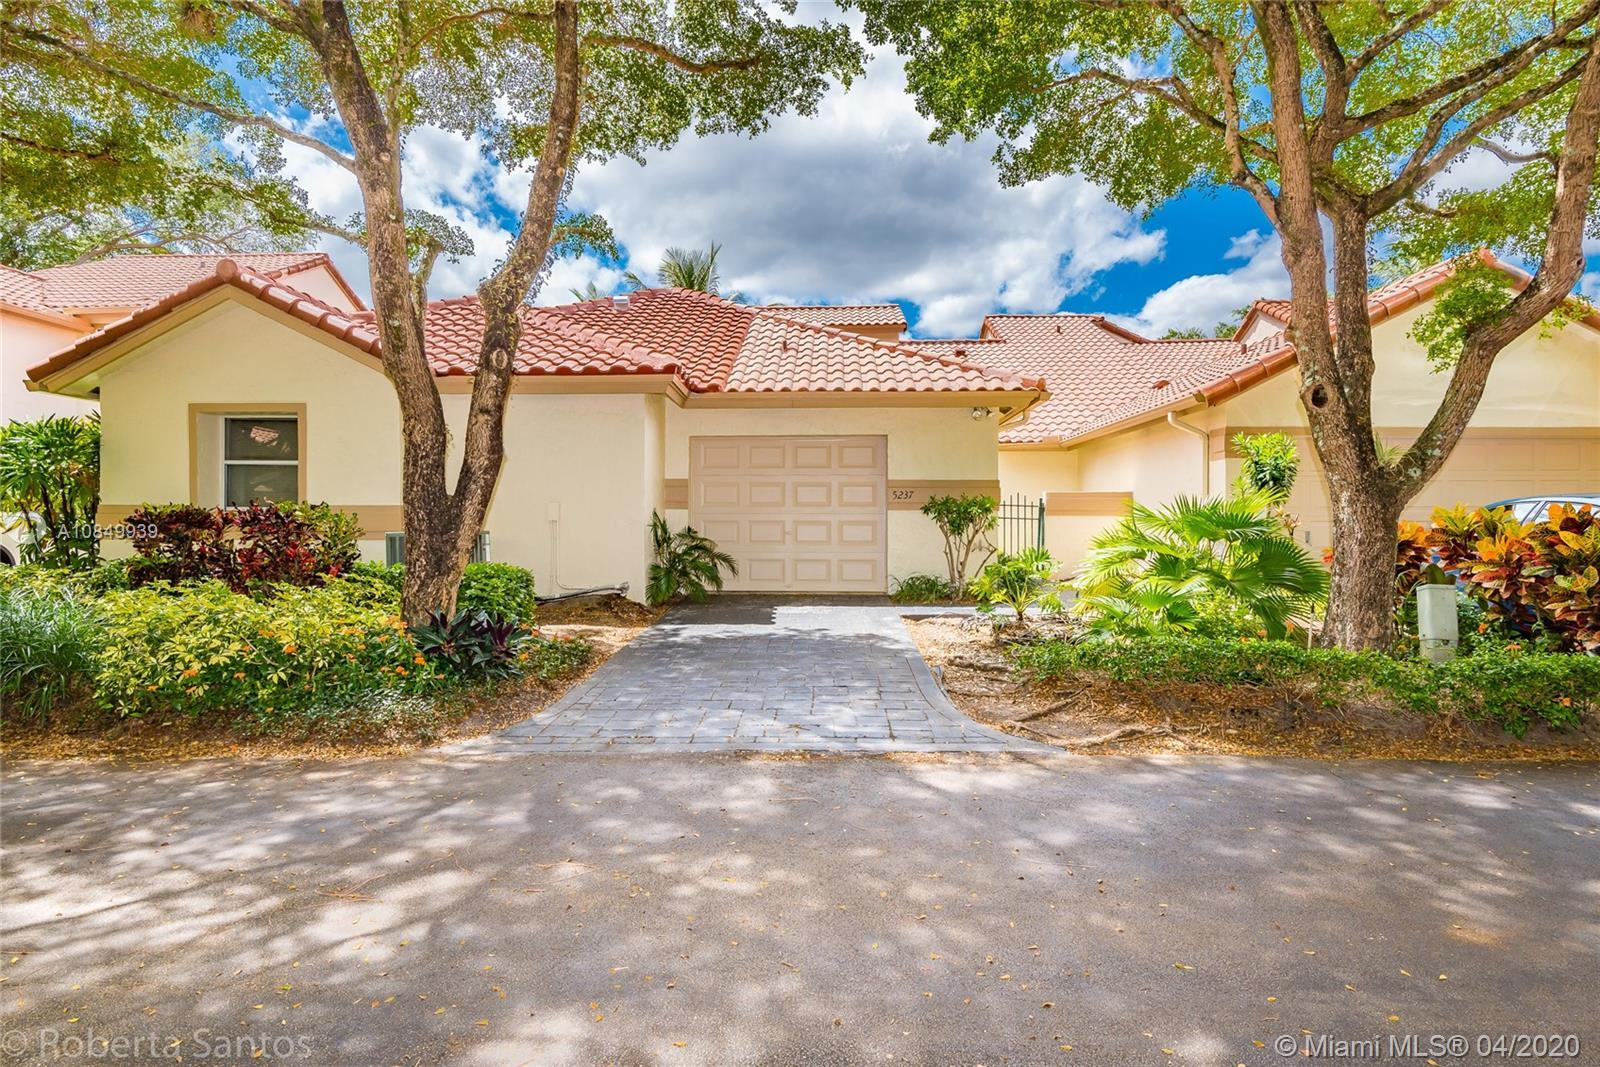 Amazing house in a gated community in the heart of Boca Raton. Walk distance to the Town Center Mall